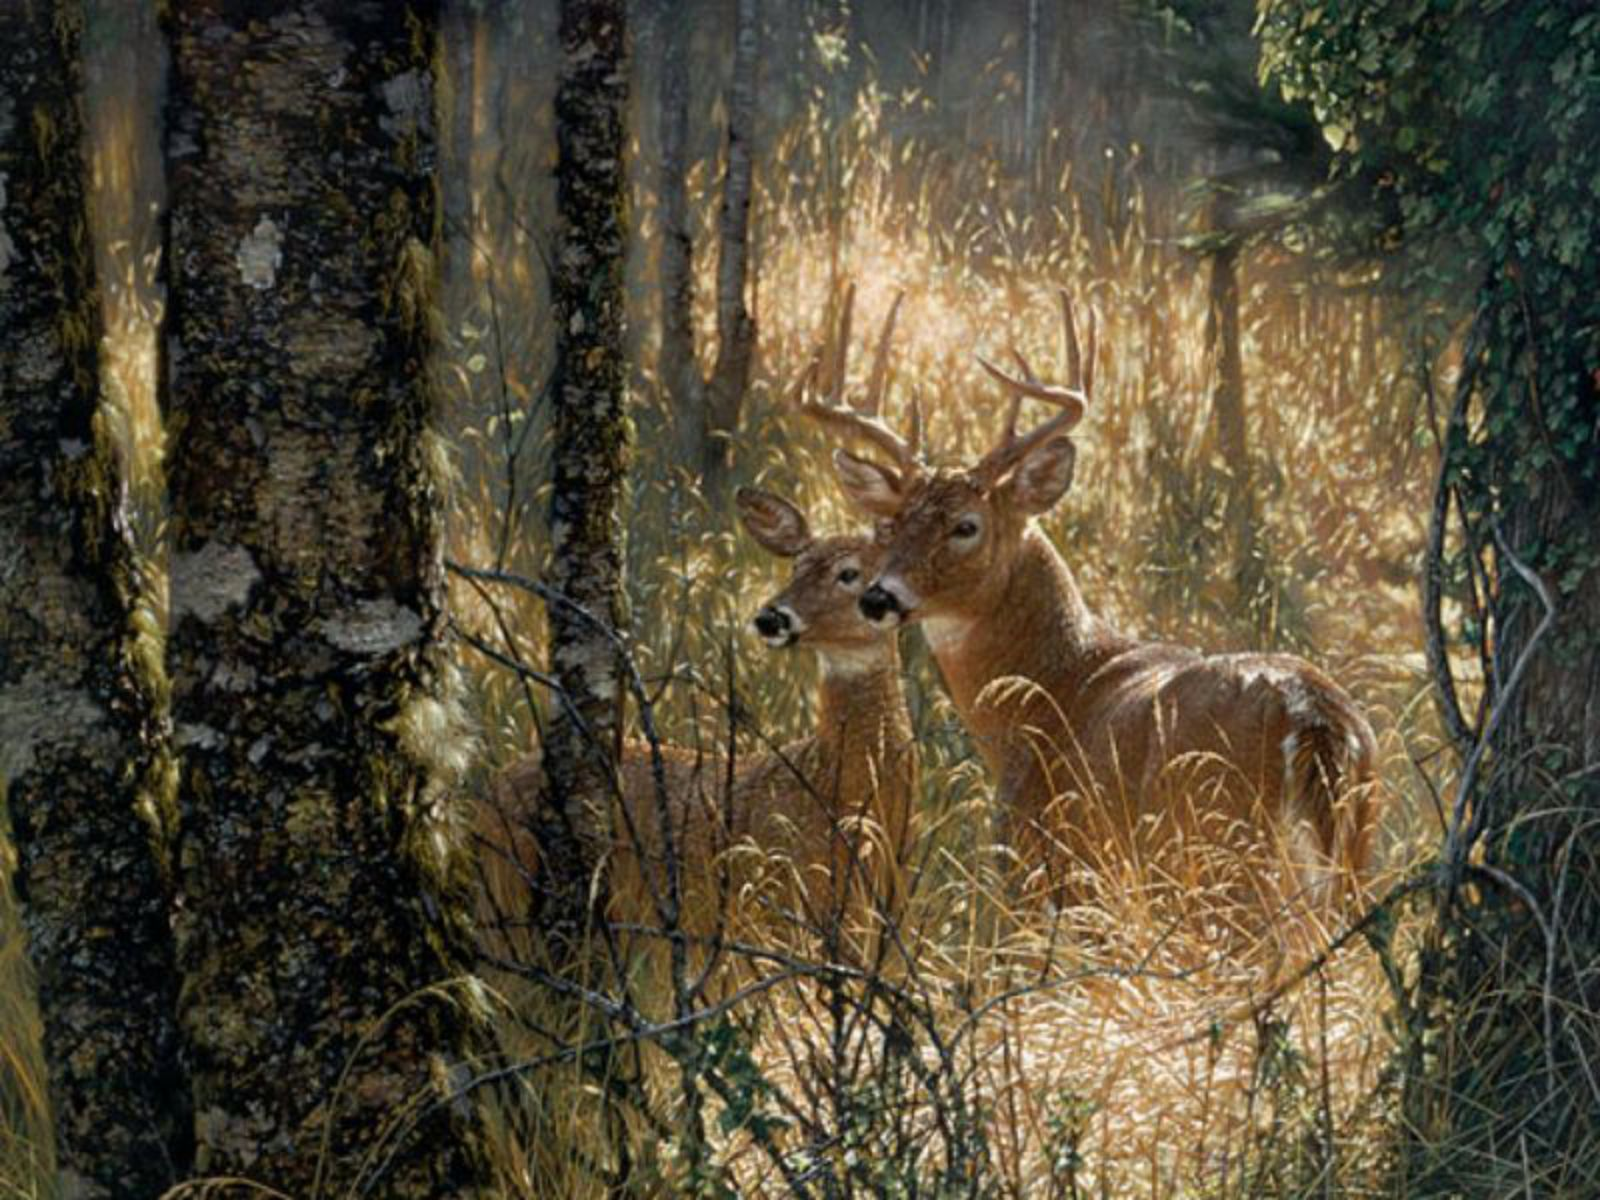 Definition deer wallpaperHigh Definition whitetail deer wallpaper 1600x1200